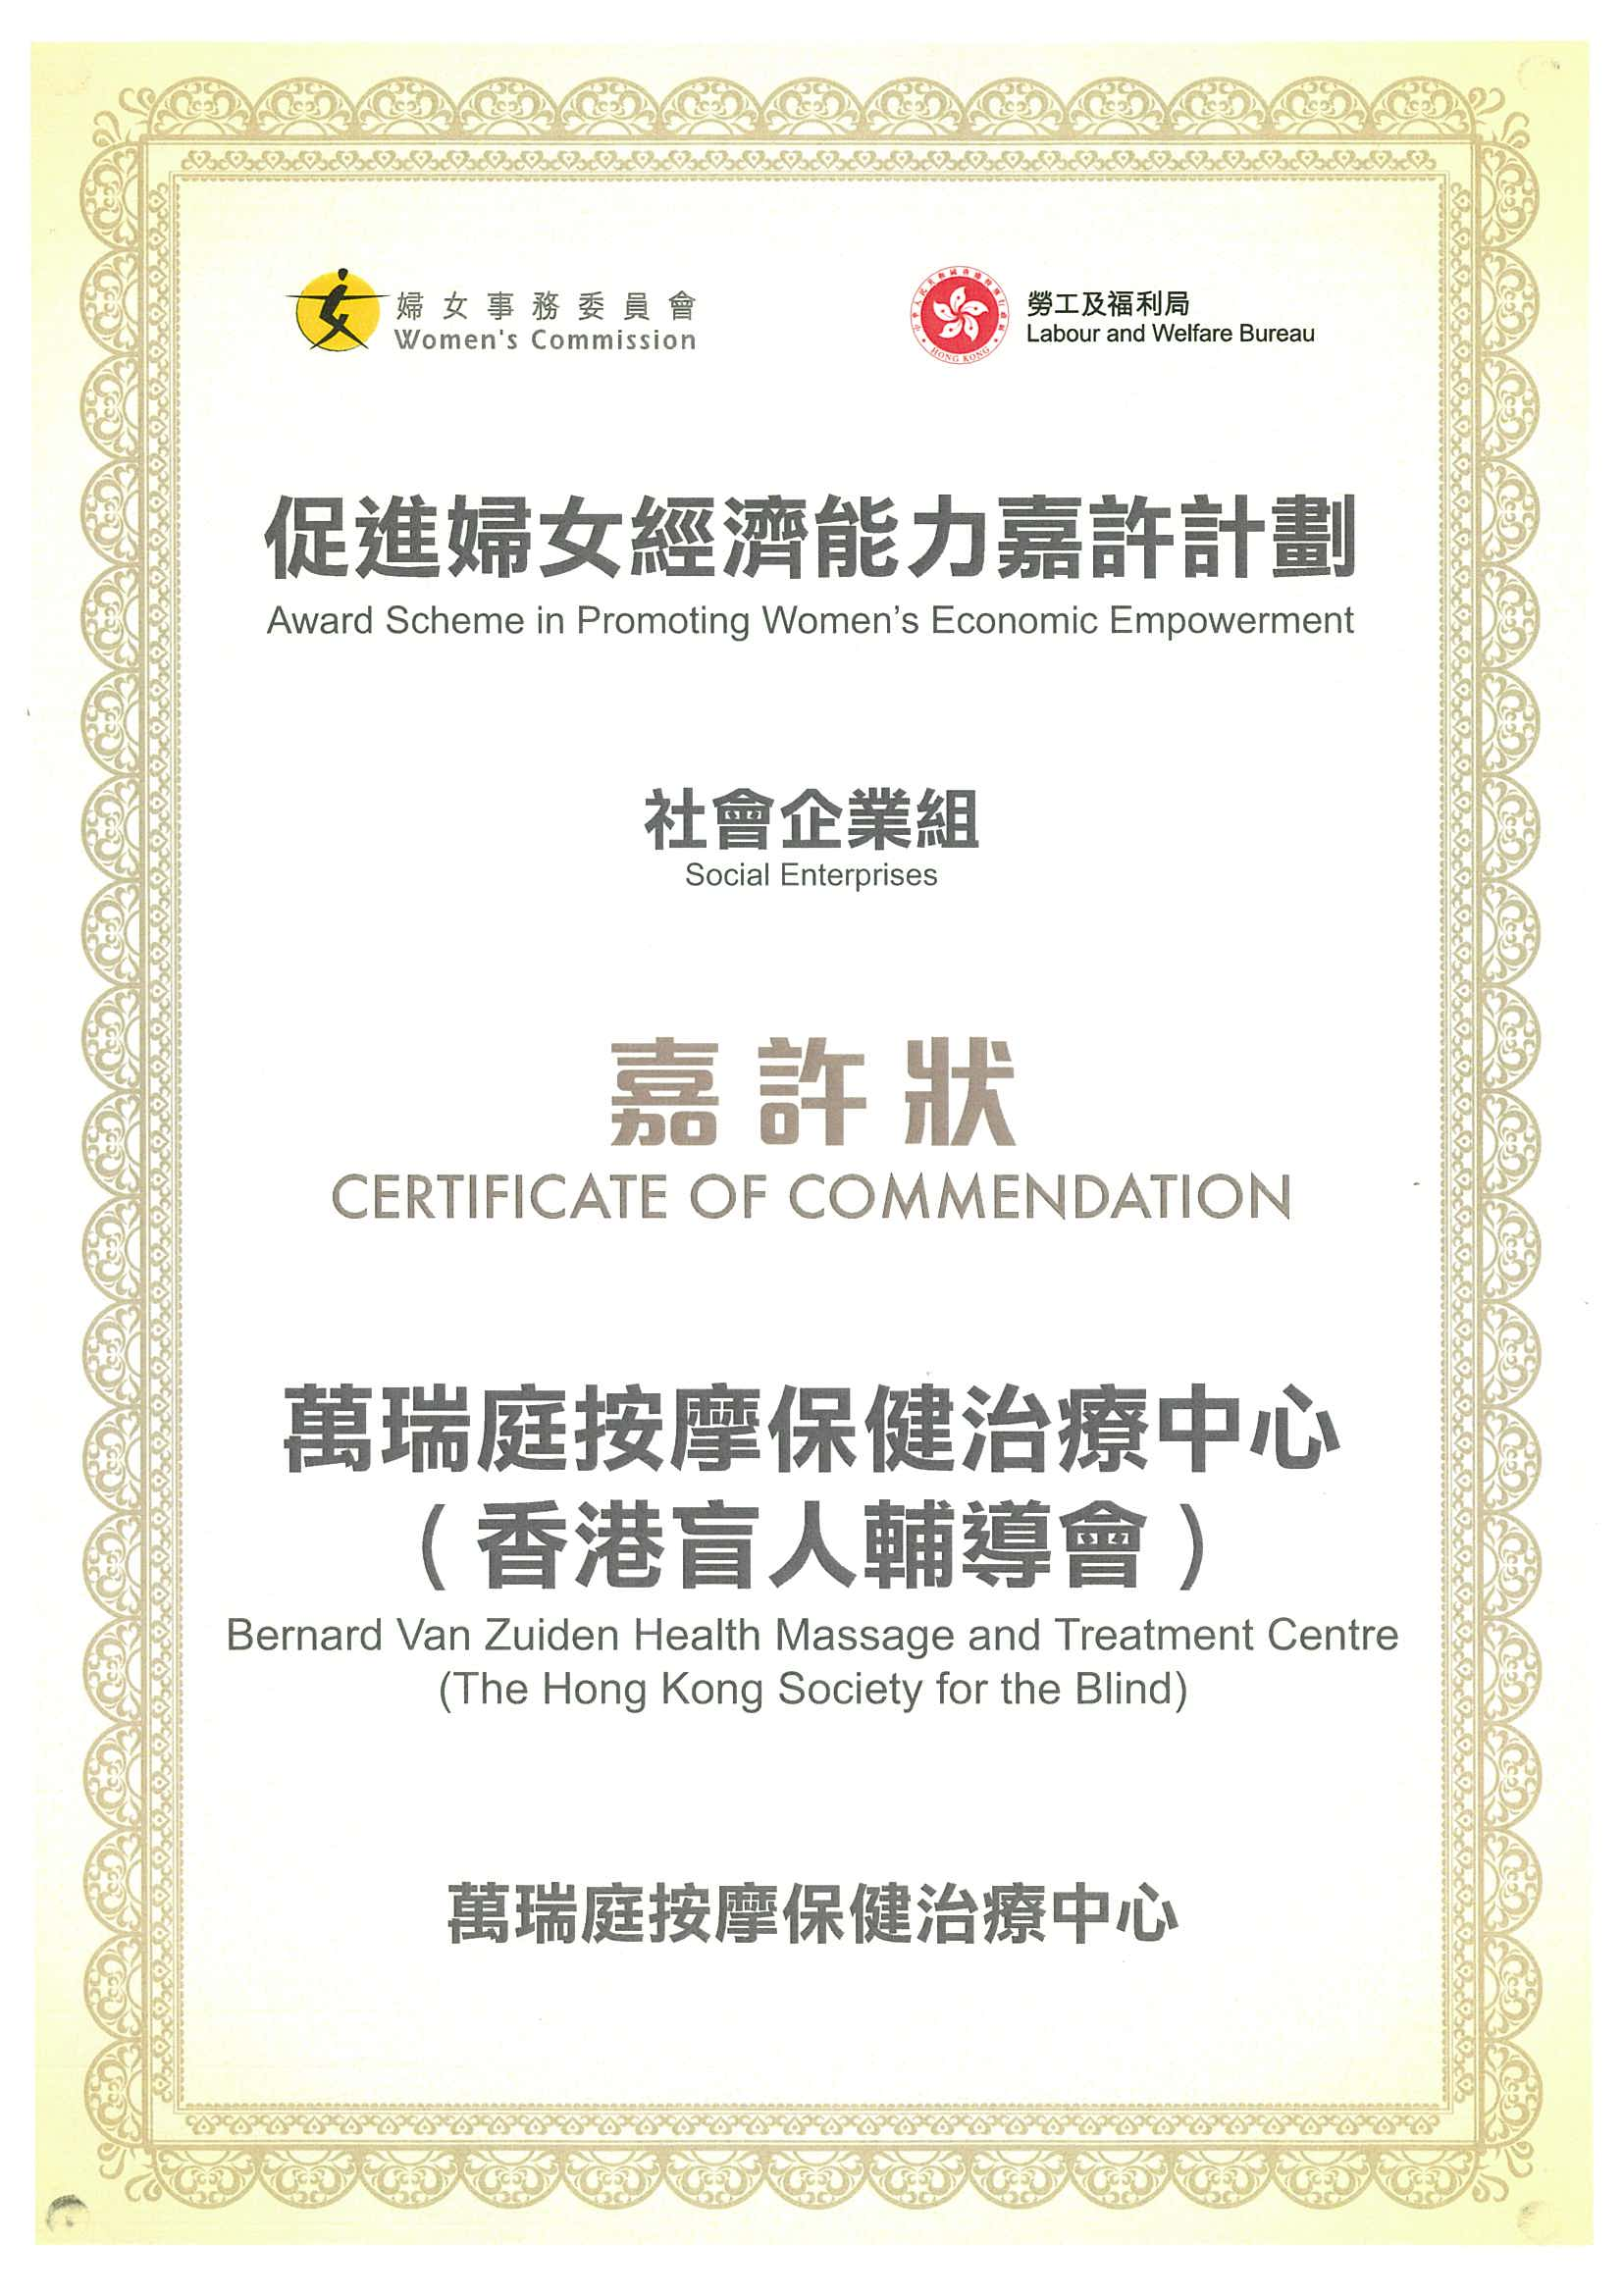 Health Massage And Treatment Centres Hksb The Hong Kong Society